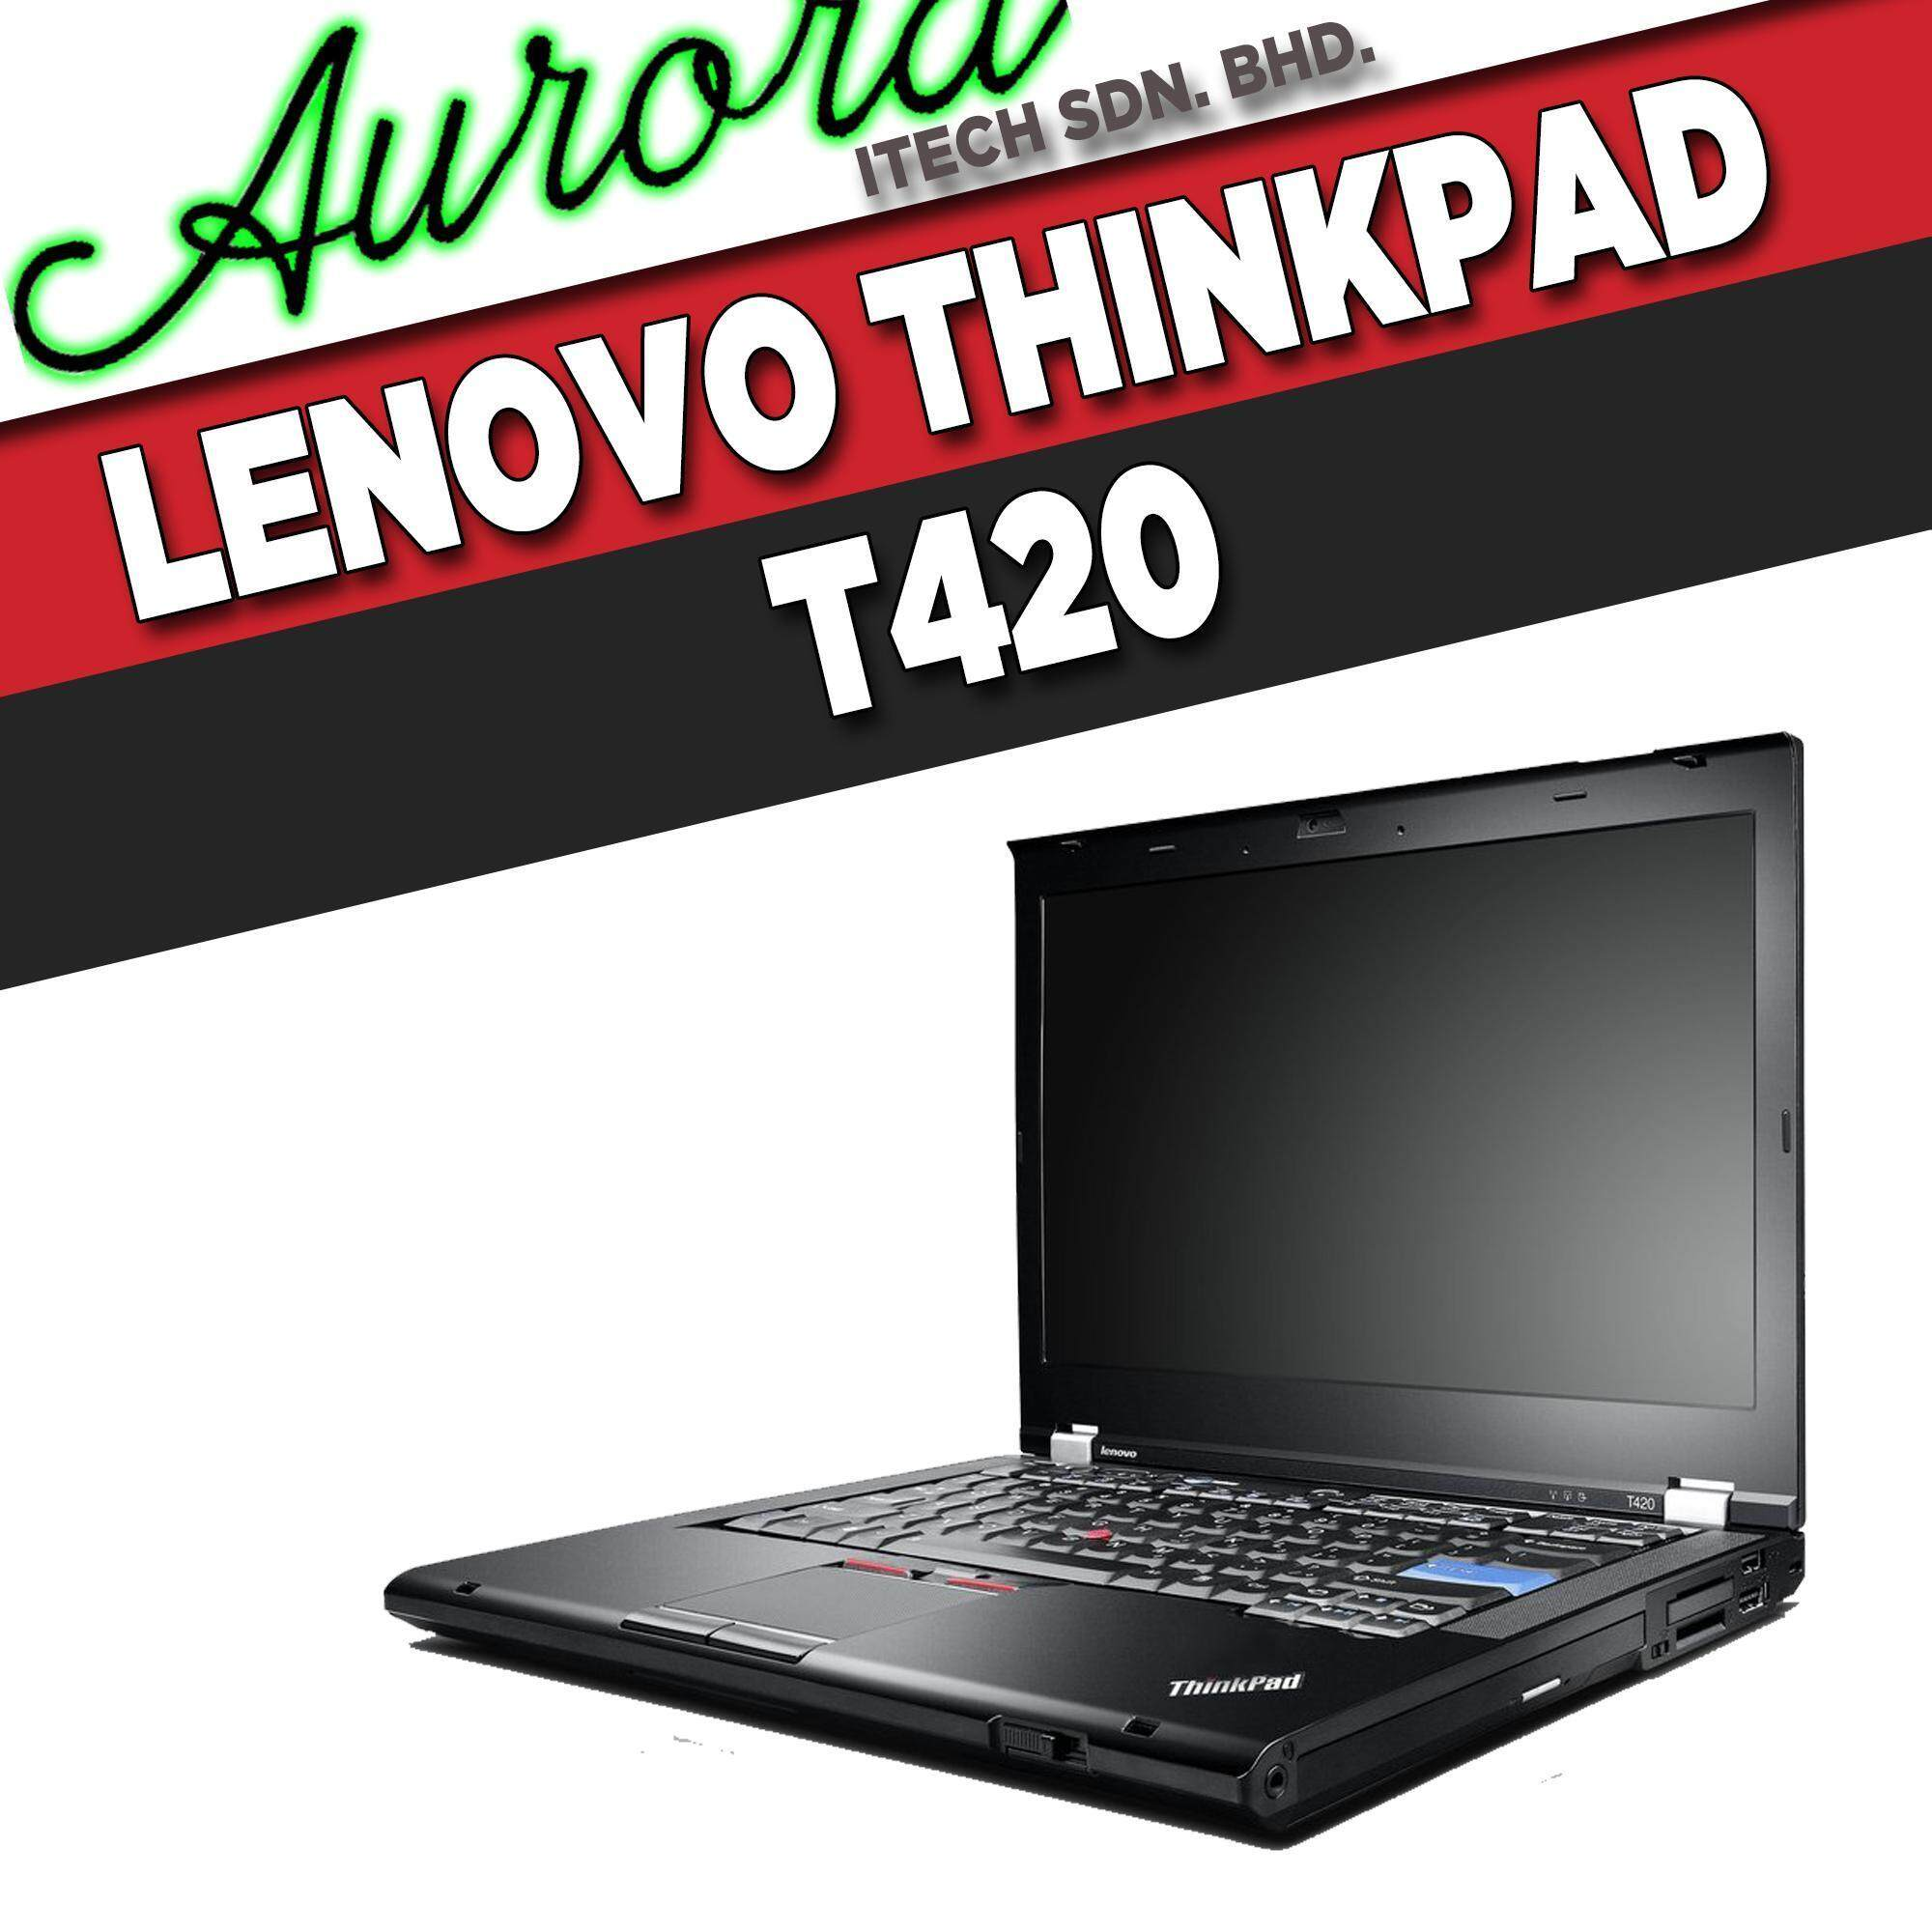 (REFURBISHED)Lenovo ThinkPad T420 / INTEL CORE i5-2520M / 4 GB DDR3 RAM / 250 GB SATA HDD / 14 - INCH LCD / 1 YearWarranty,Free Mouse Malaysia